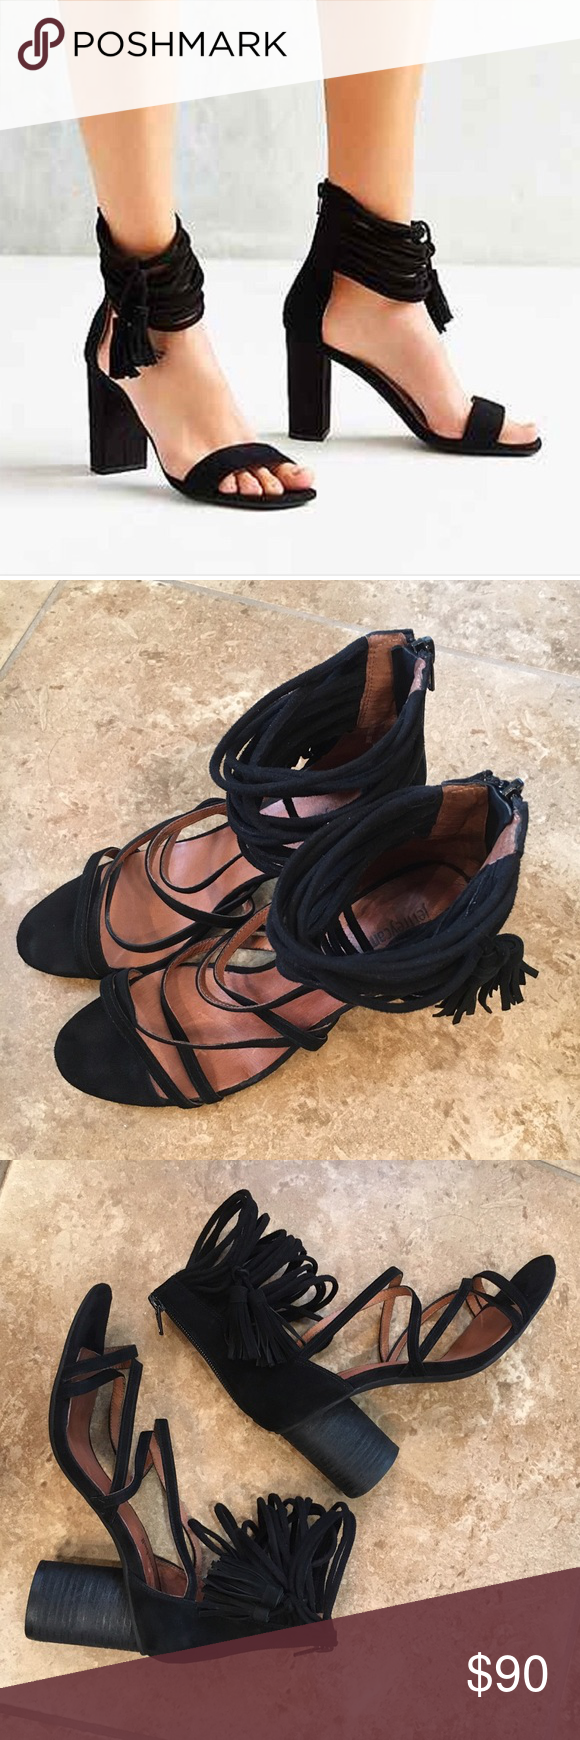 Jeffrey campbell shoes, Strappy sandals